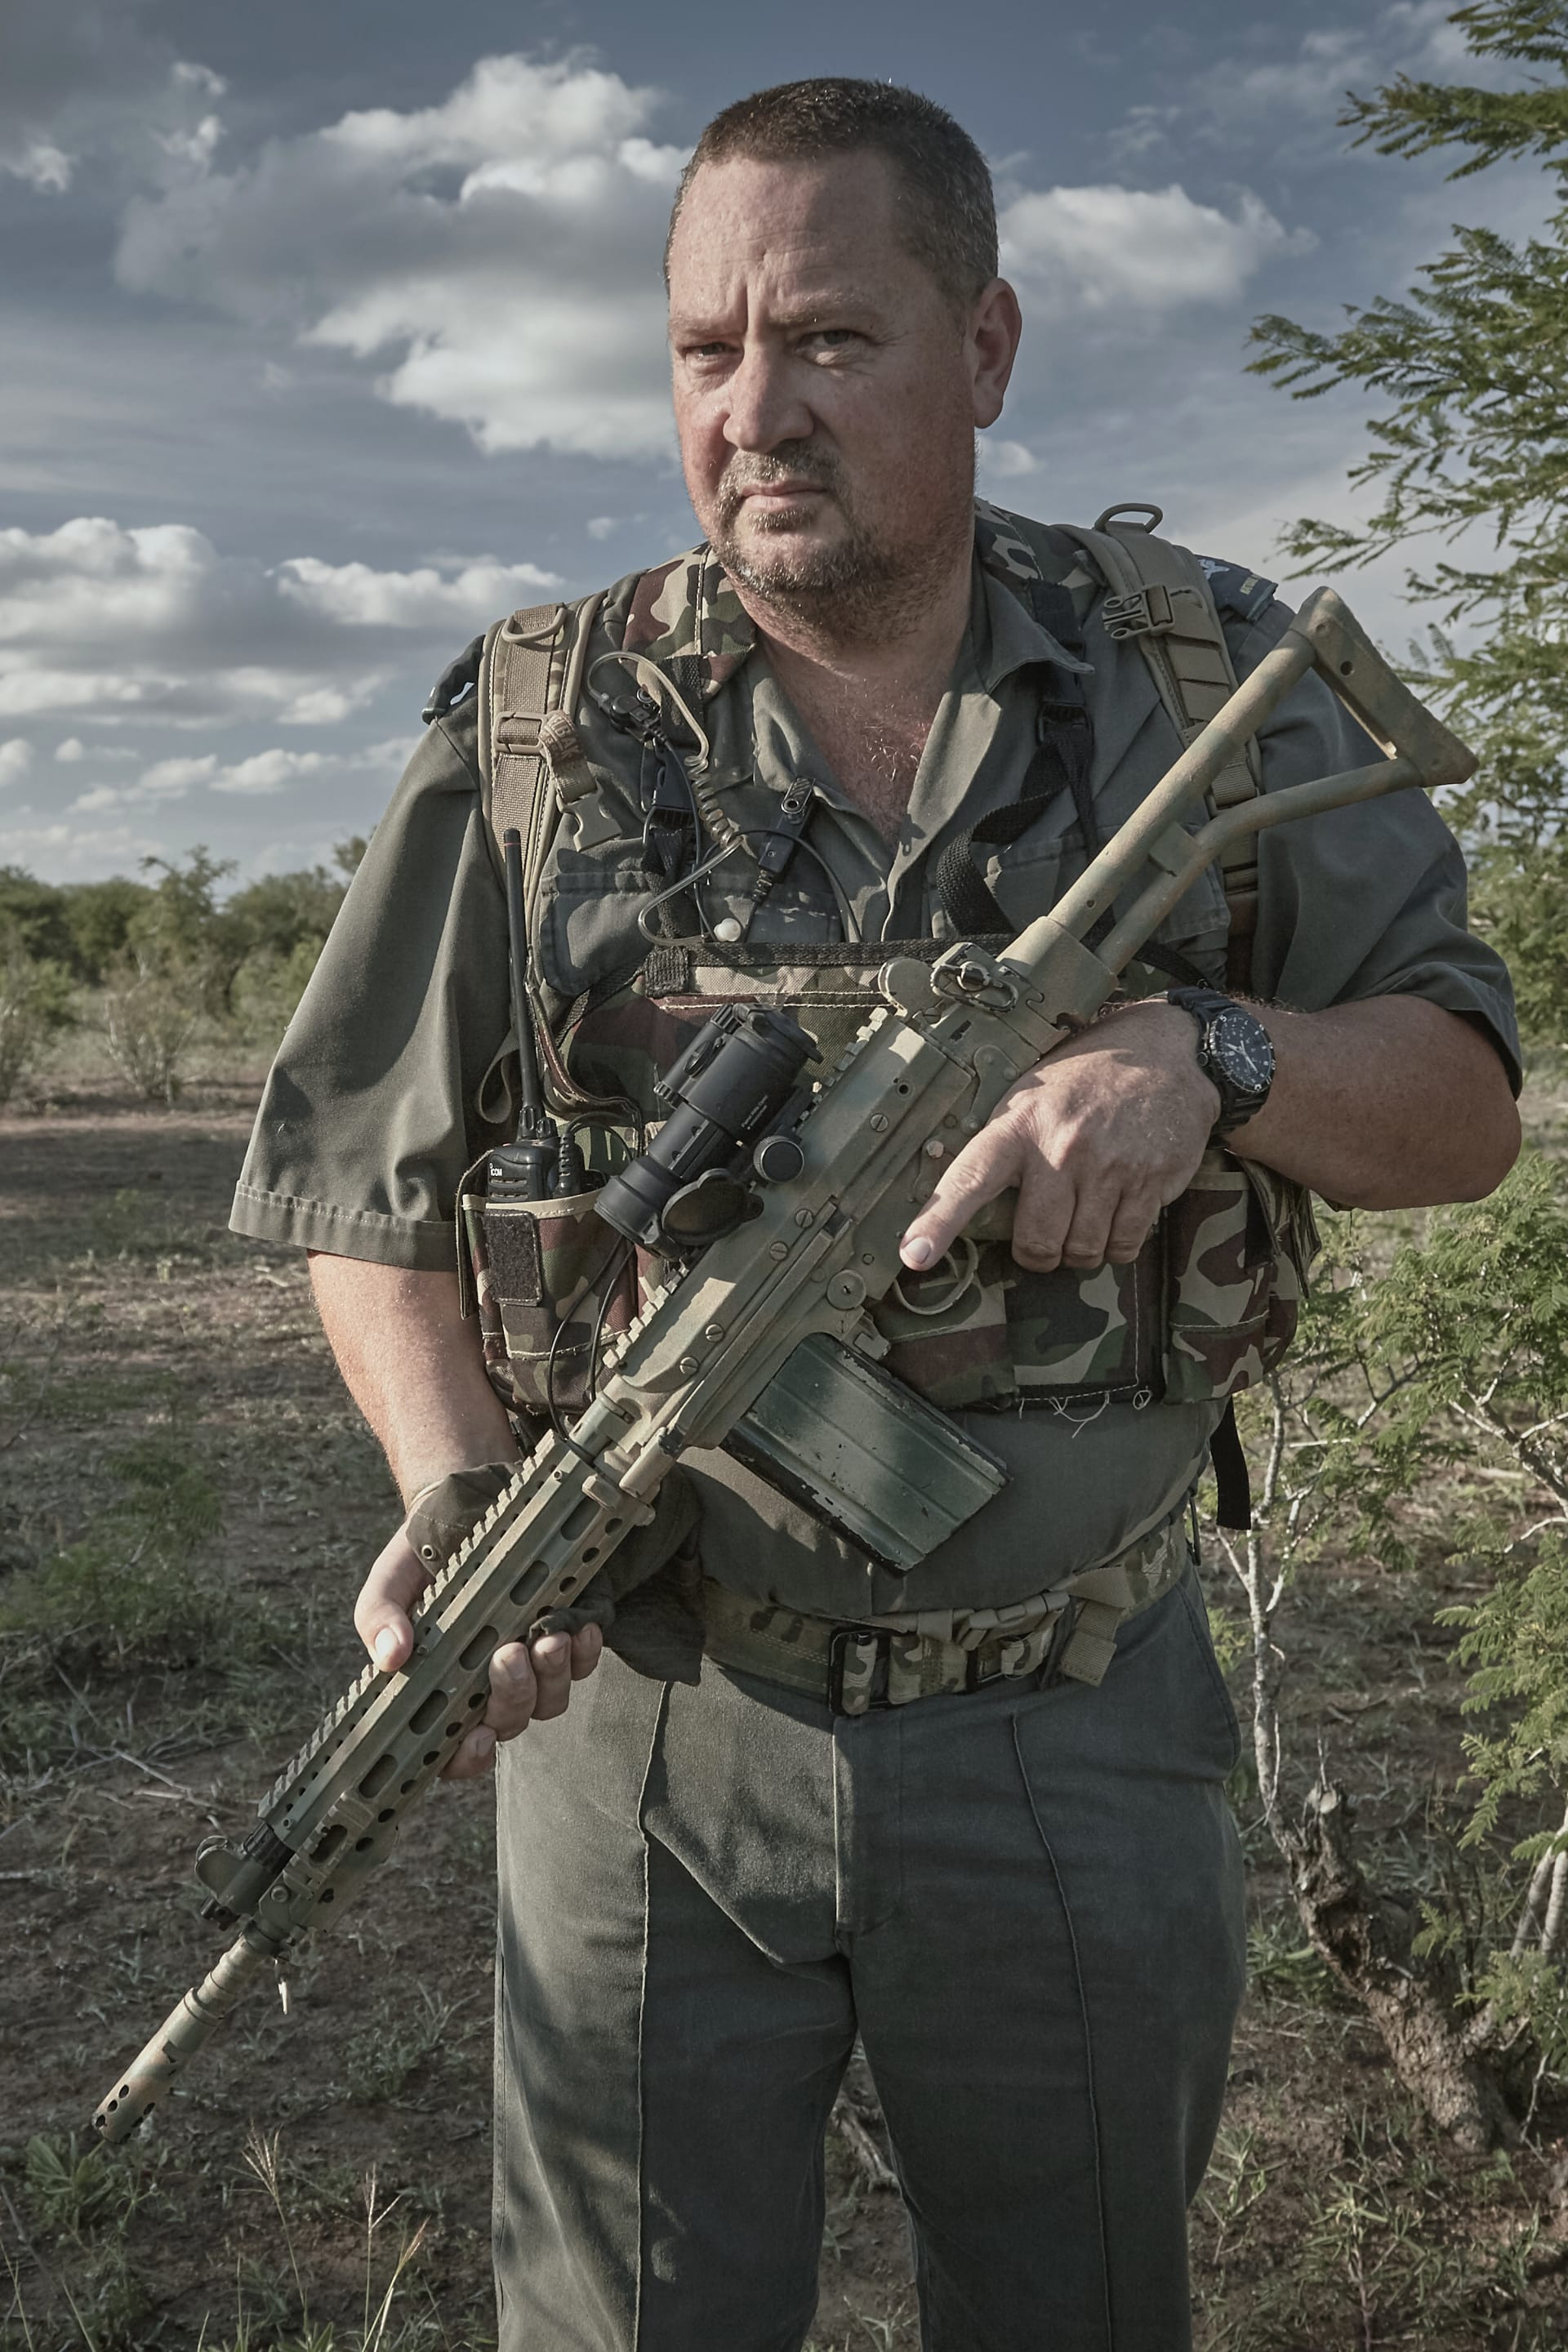 Section ranger - his primary function is to ensure the integrity of his section. That task may extend into contact situations with poachers, often exchanging gunfire.